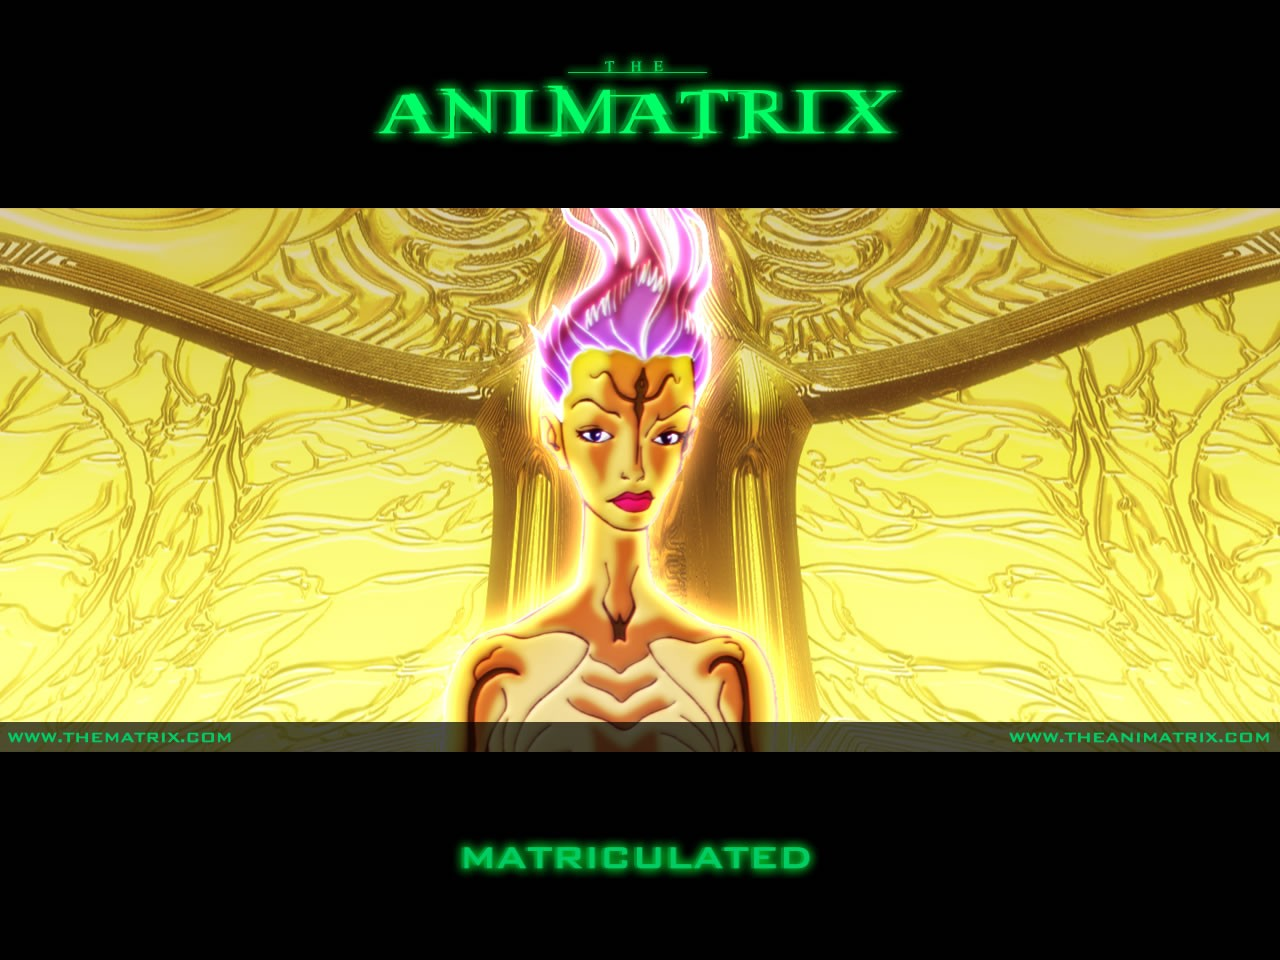 Un wallpaper dell'episodio 'Matriculated' di Animatrix